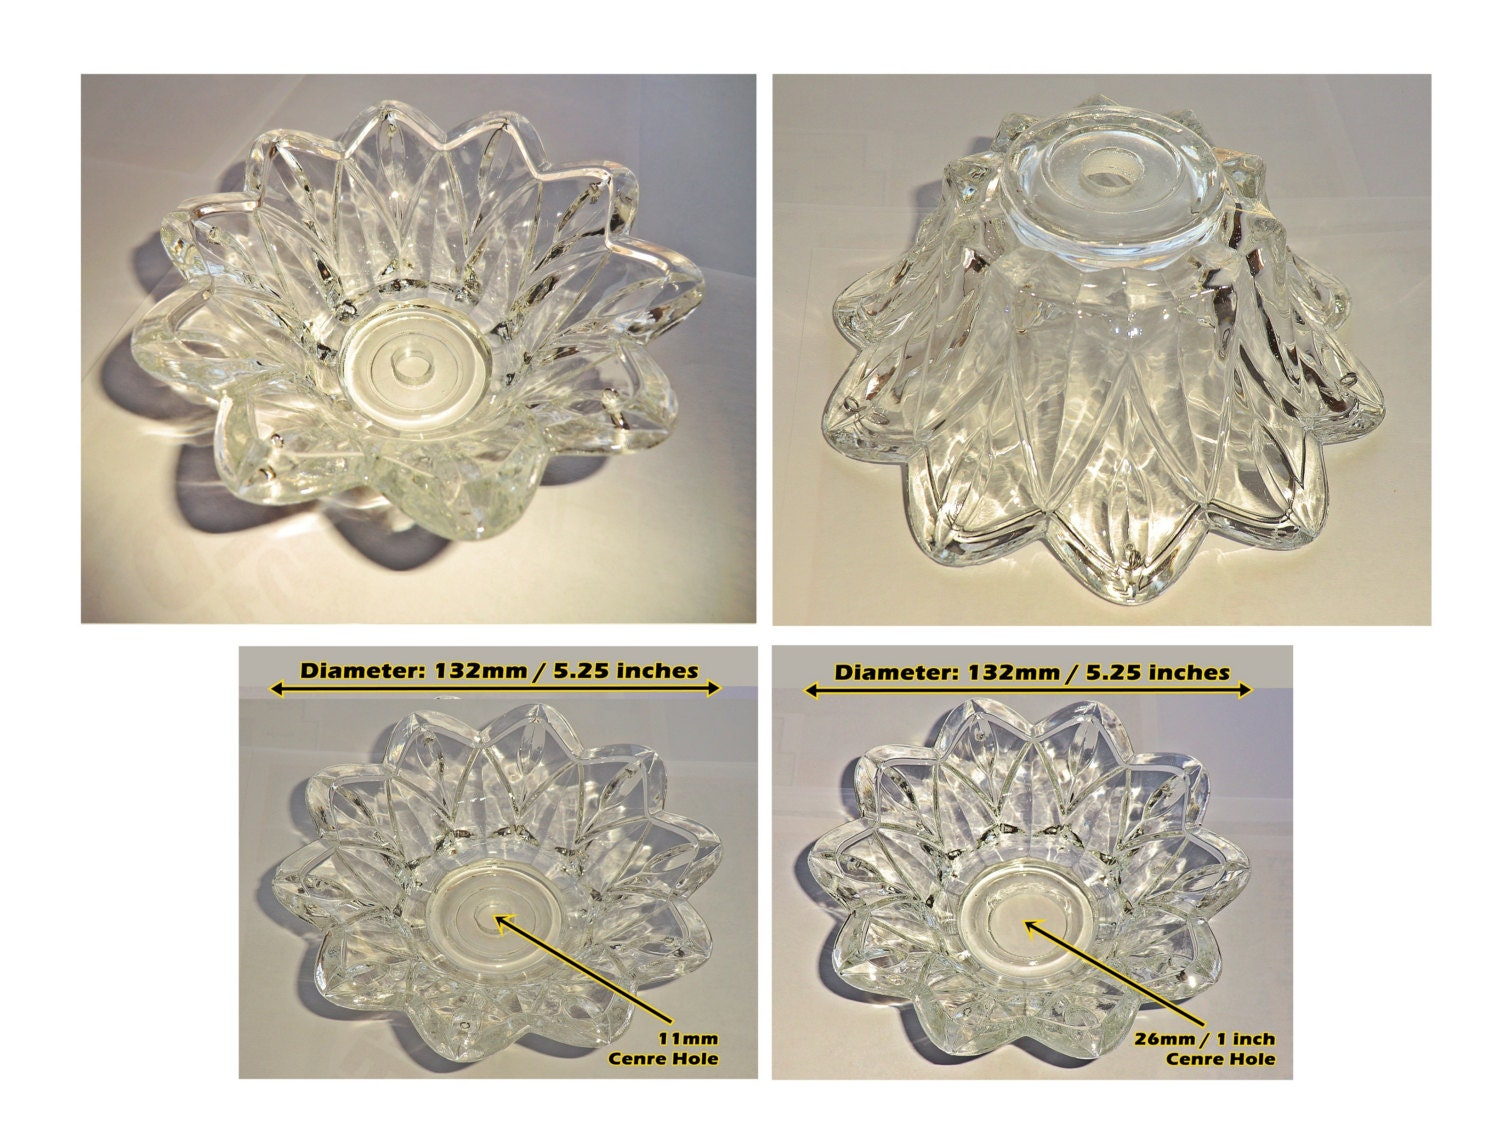 Chandelier bobeche deep bowl drip tray thick cut glass light pan cup chandelier bobeche deep bowl drip tray thick cut glass light pan cup scallop edge 132mm 525 inch retro vintage antique style 5 hoops bn aloadofball Images